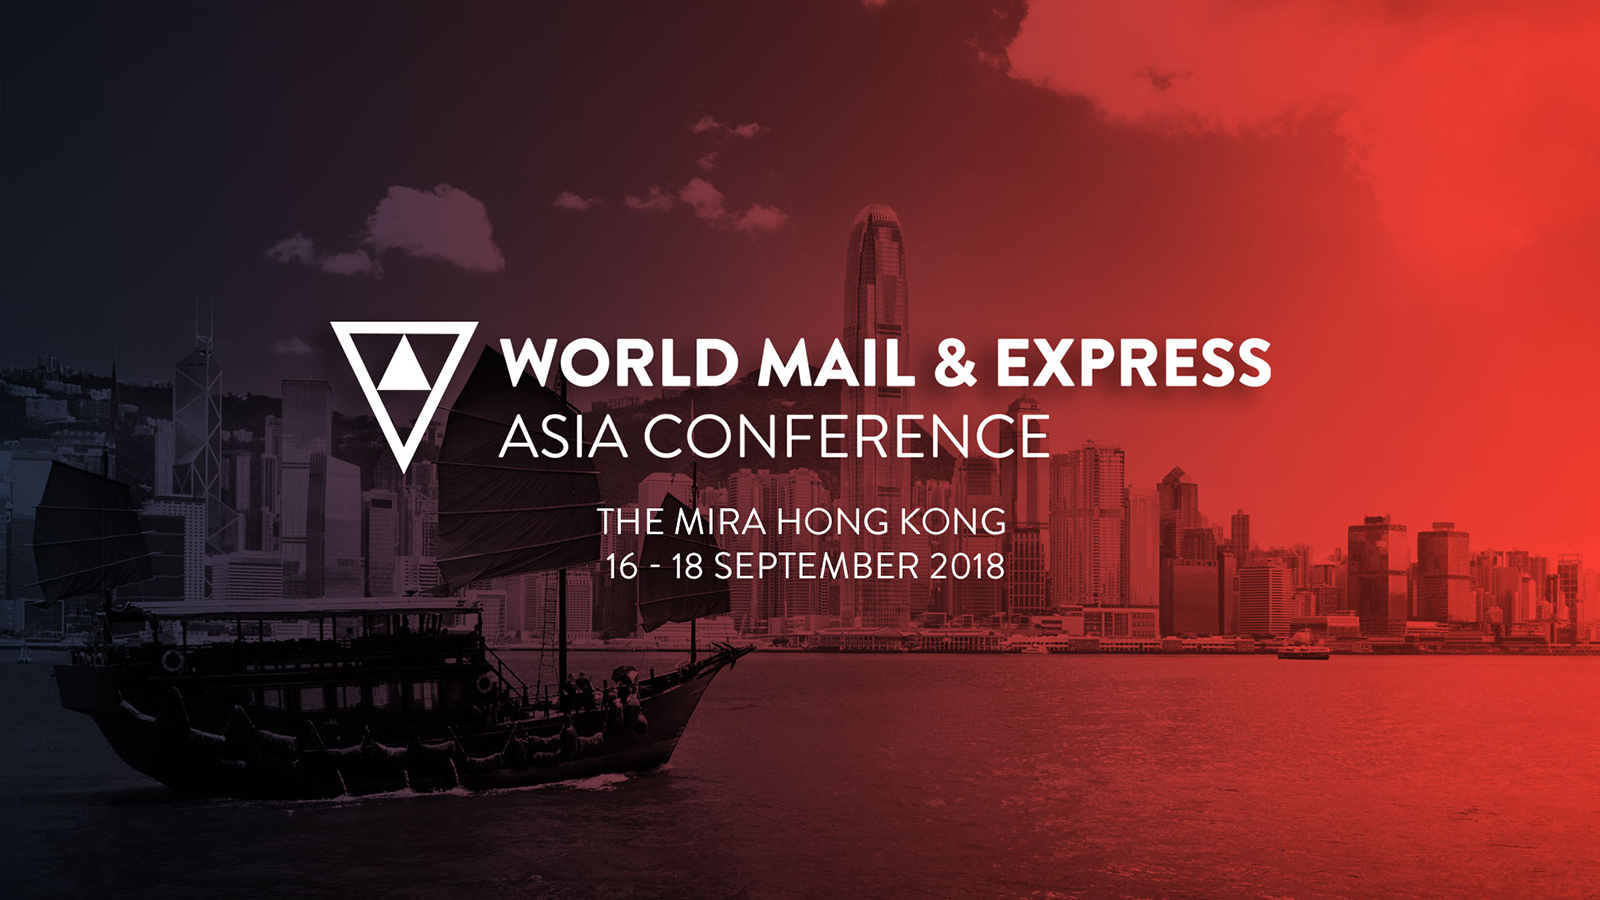 WMX, World Mail & Express Asia Conference 2018